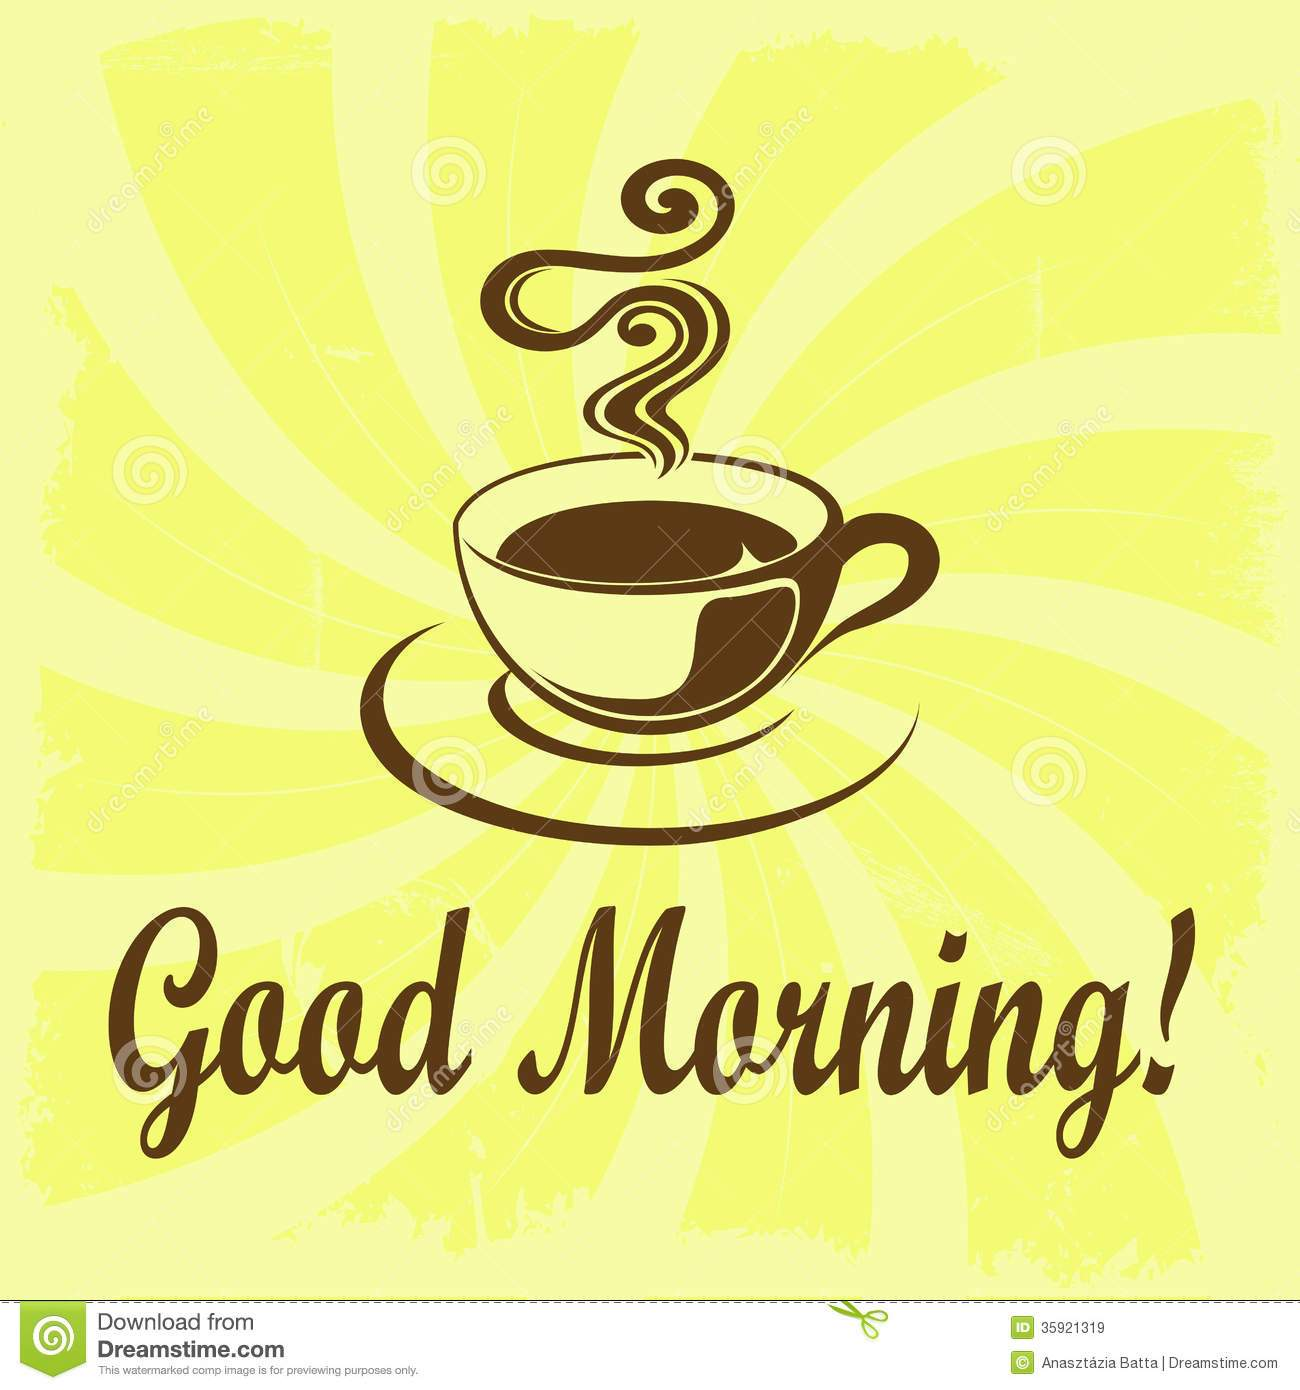 Good morning coffee clipart 4 » Clipart Portal.